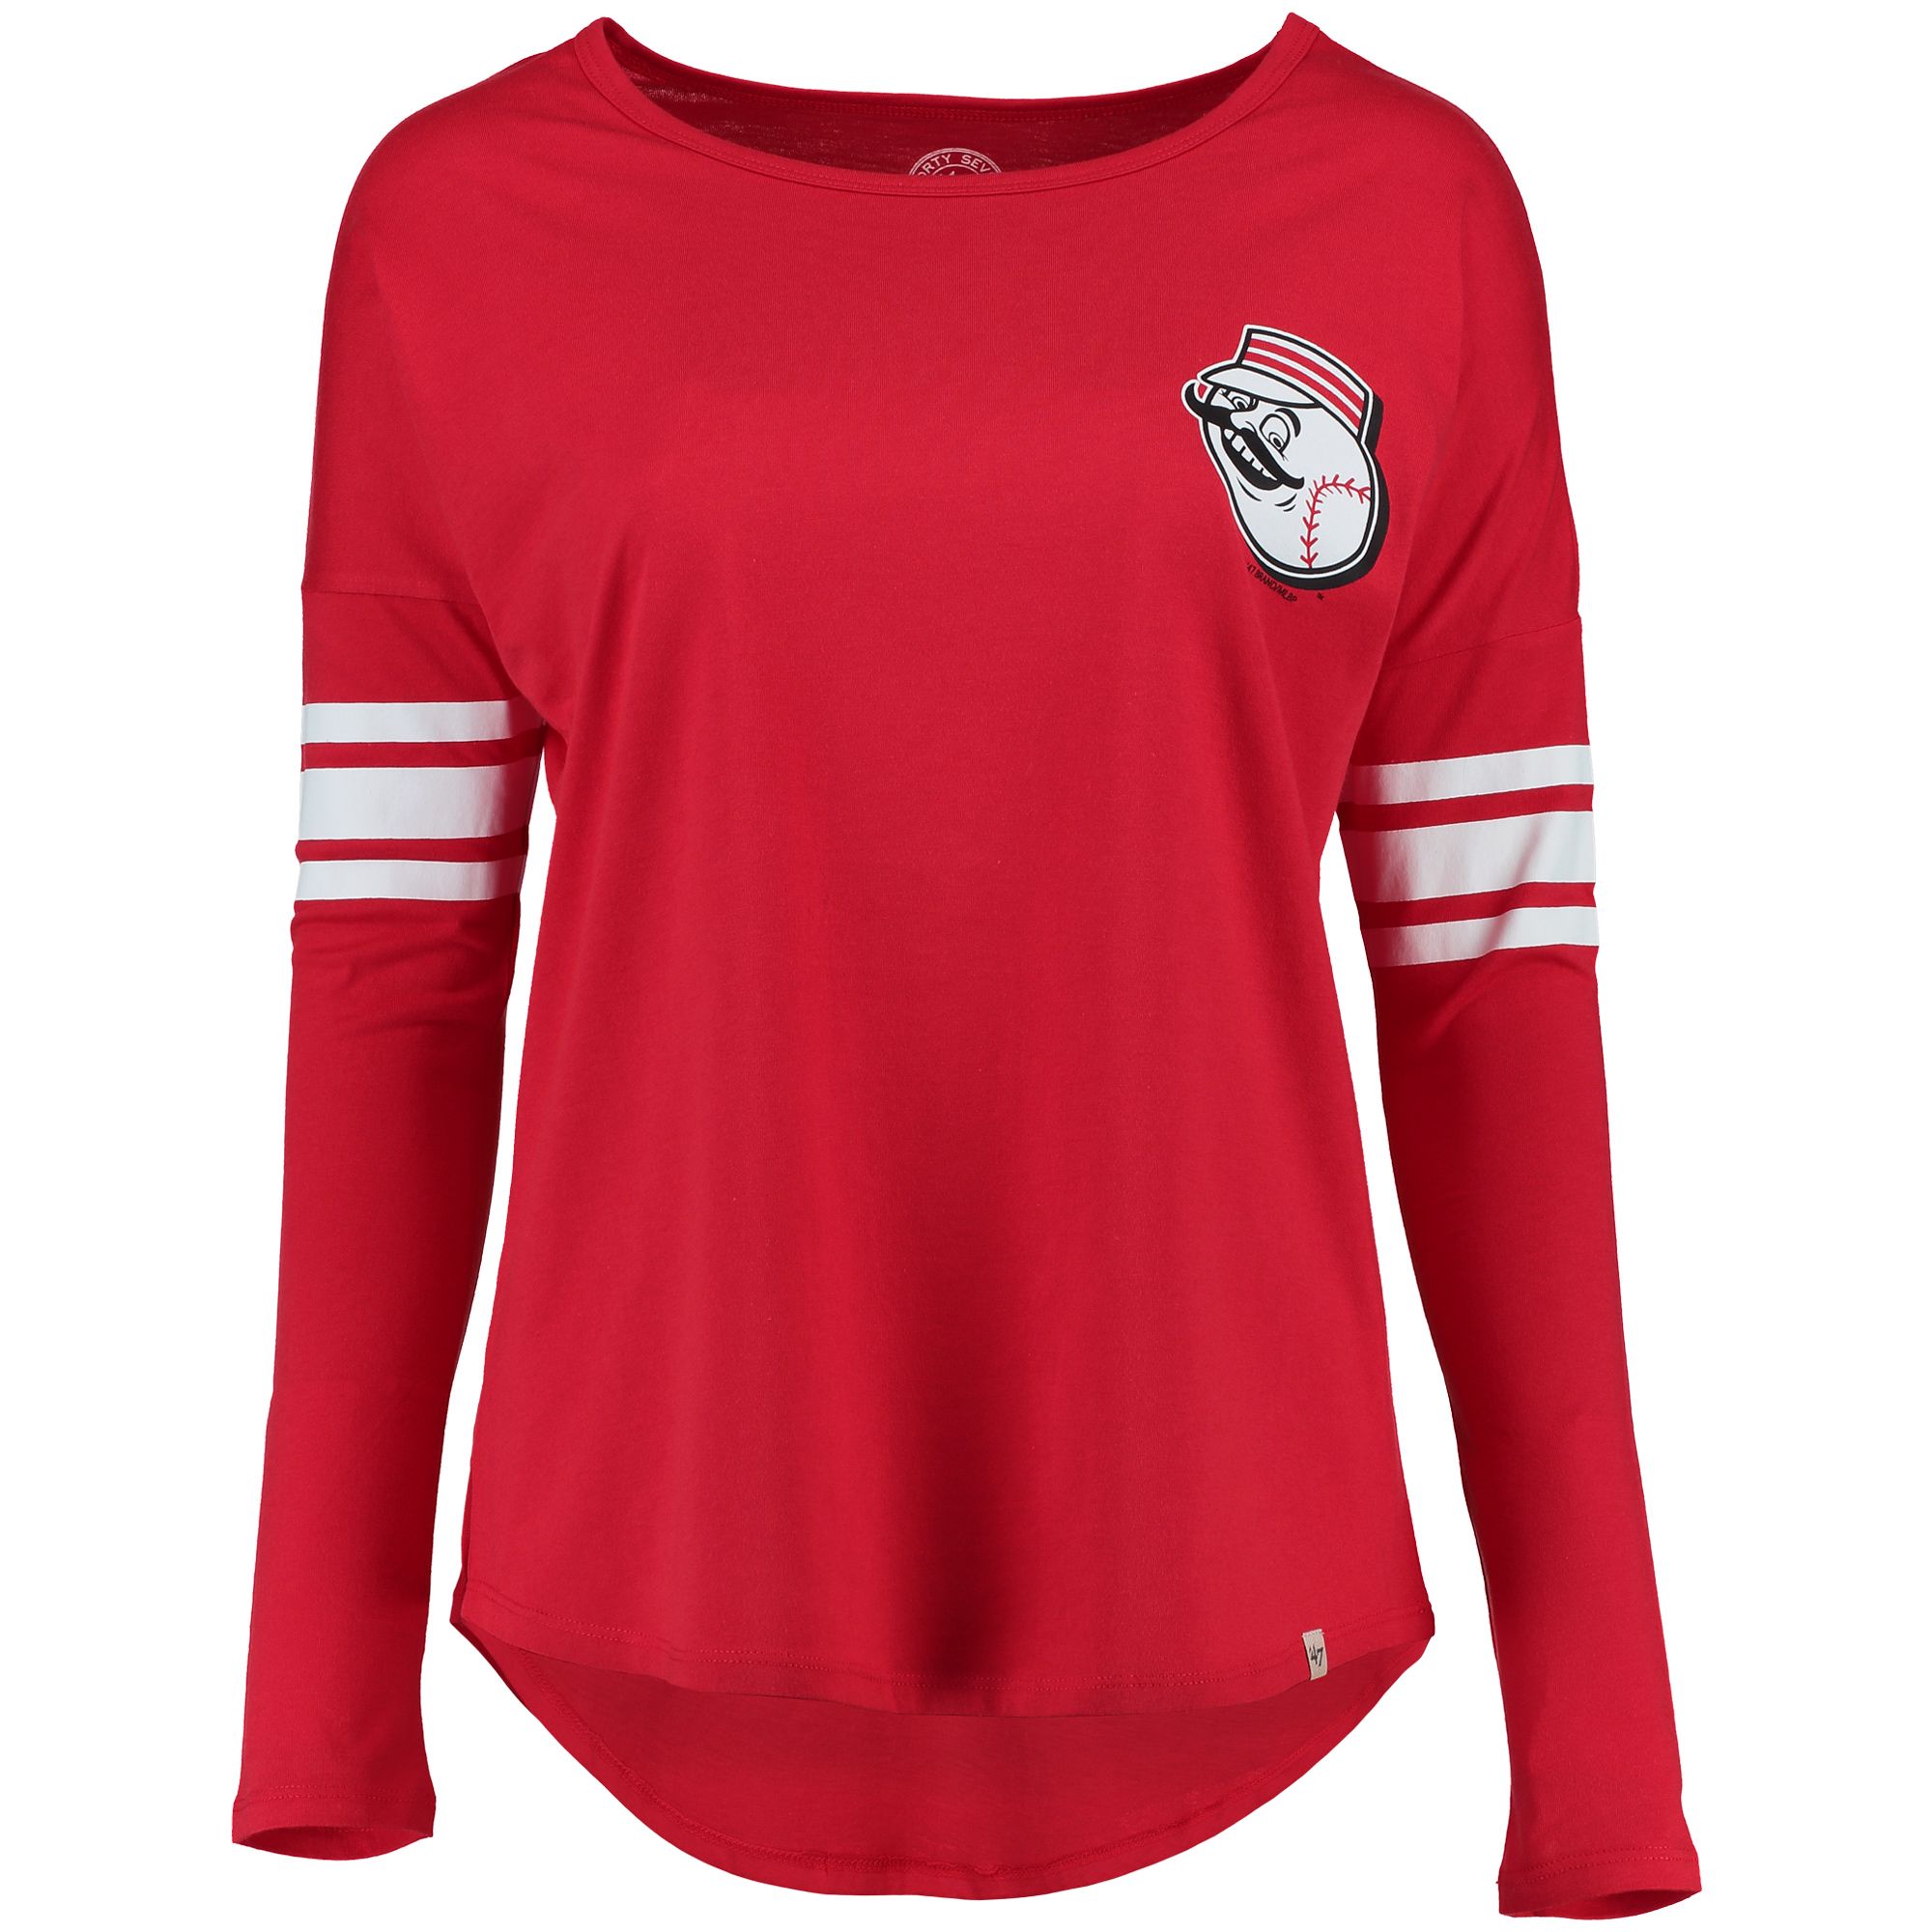 Cincinnati Reds '47 Women's Ultra Courtside Long Sleeve T-Shirt Red by TWINS ENTERPRISE INC/47 BRAND